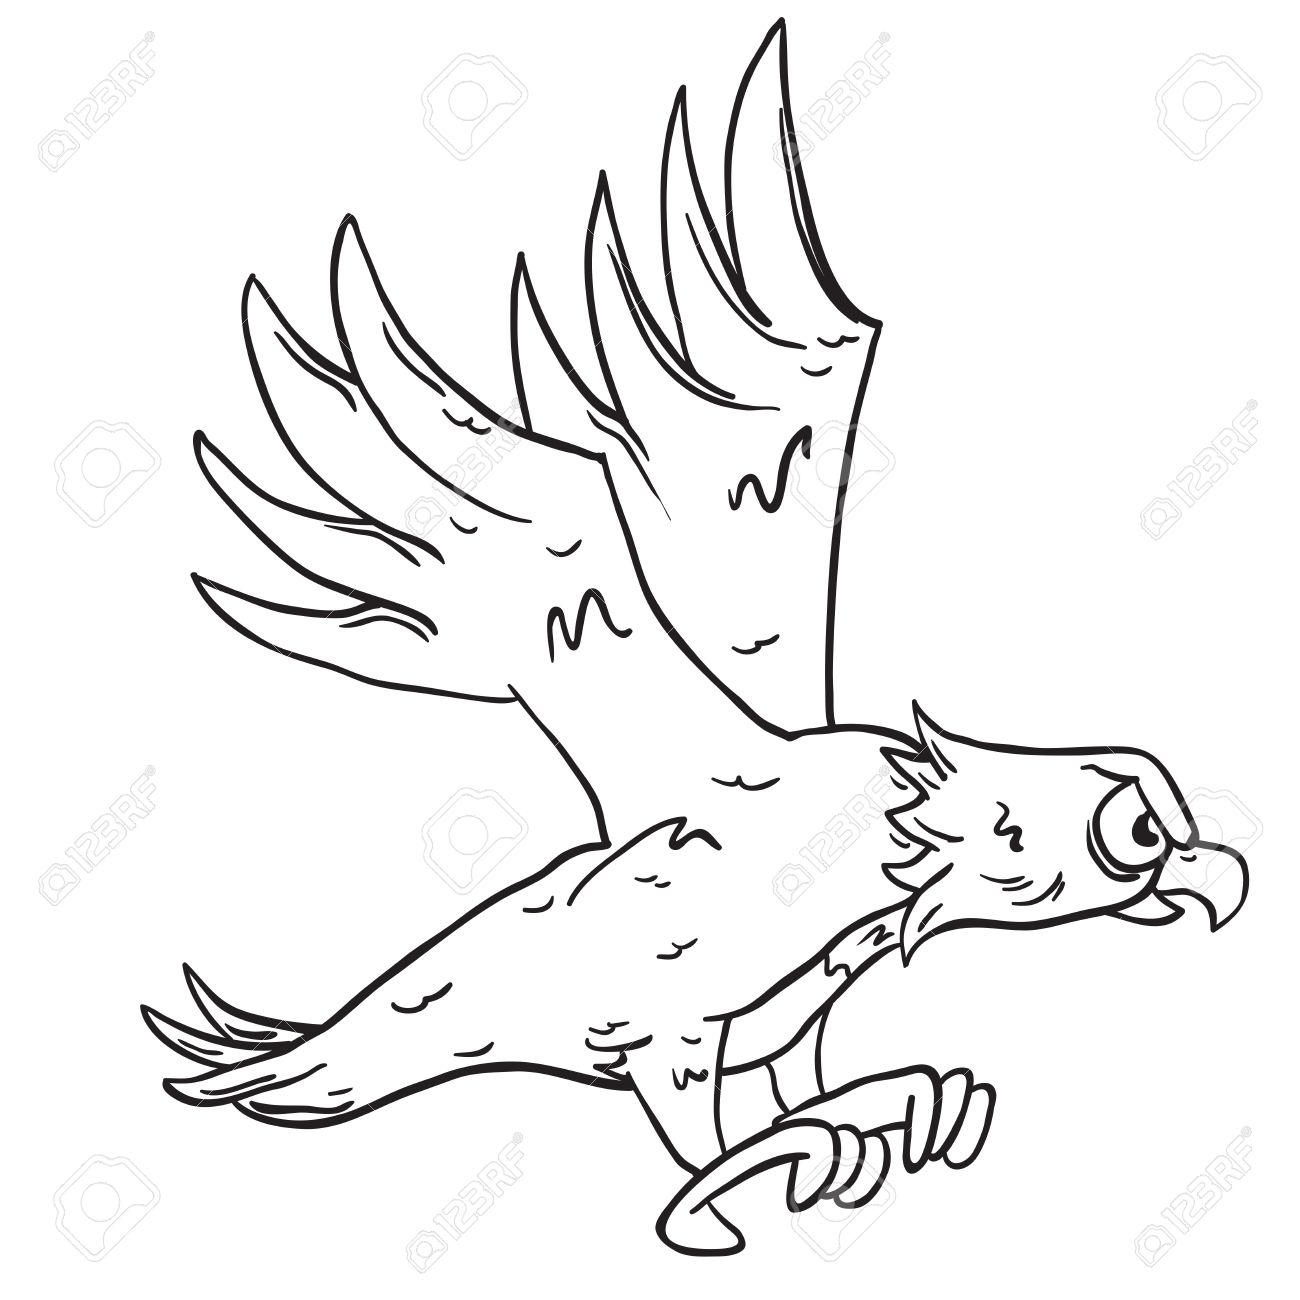 Simple black and white eagle cartoon stock vector 55349461